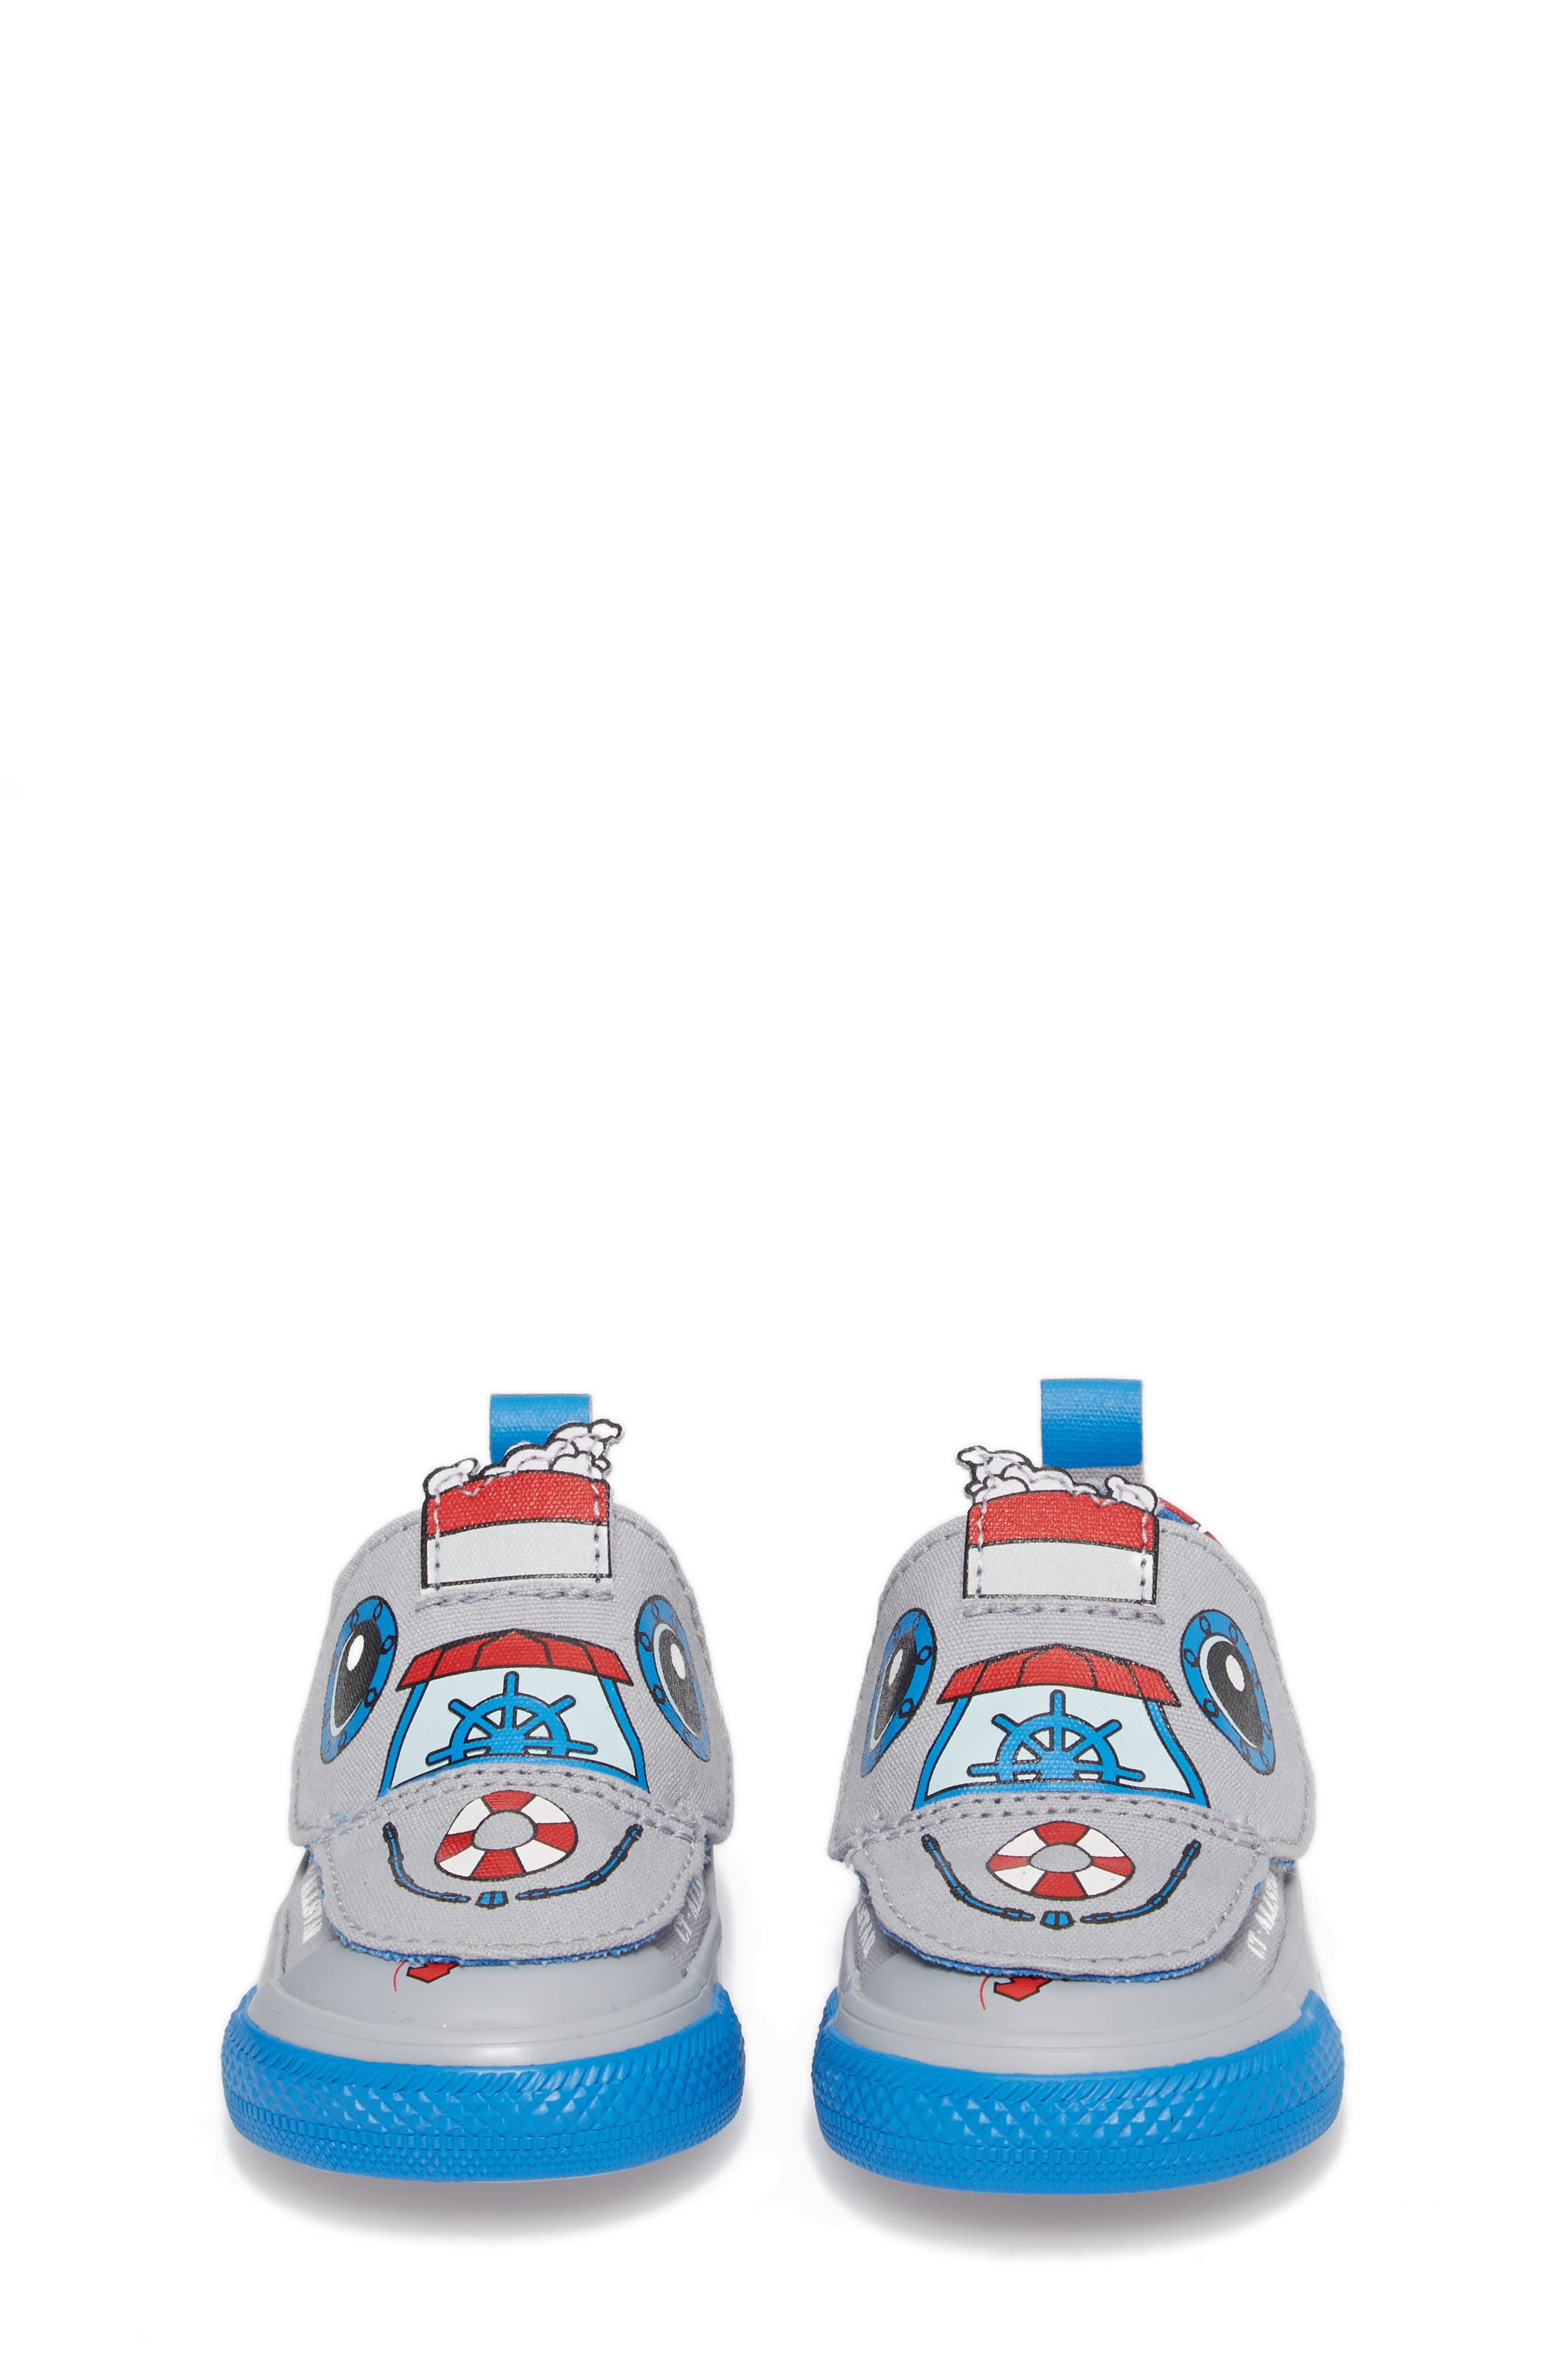 Chuck Taylor<sup>®</sup> All Star<sup>®</sup> Creatures Slip-On Sneaker,                             Alternate thumbnail 10, color,